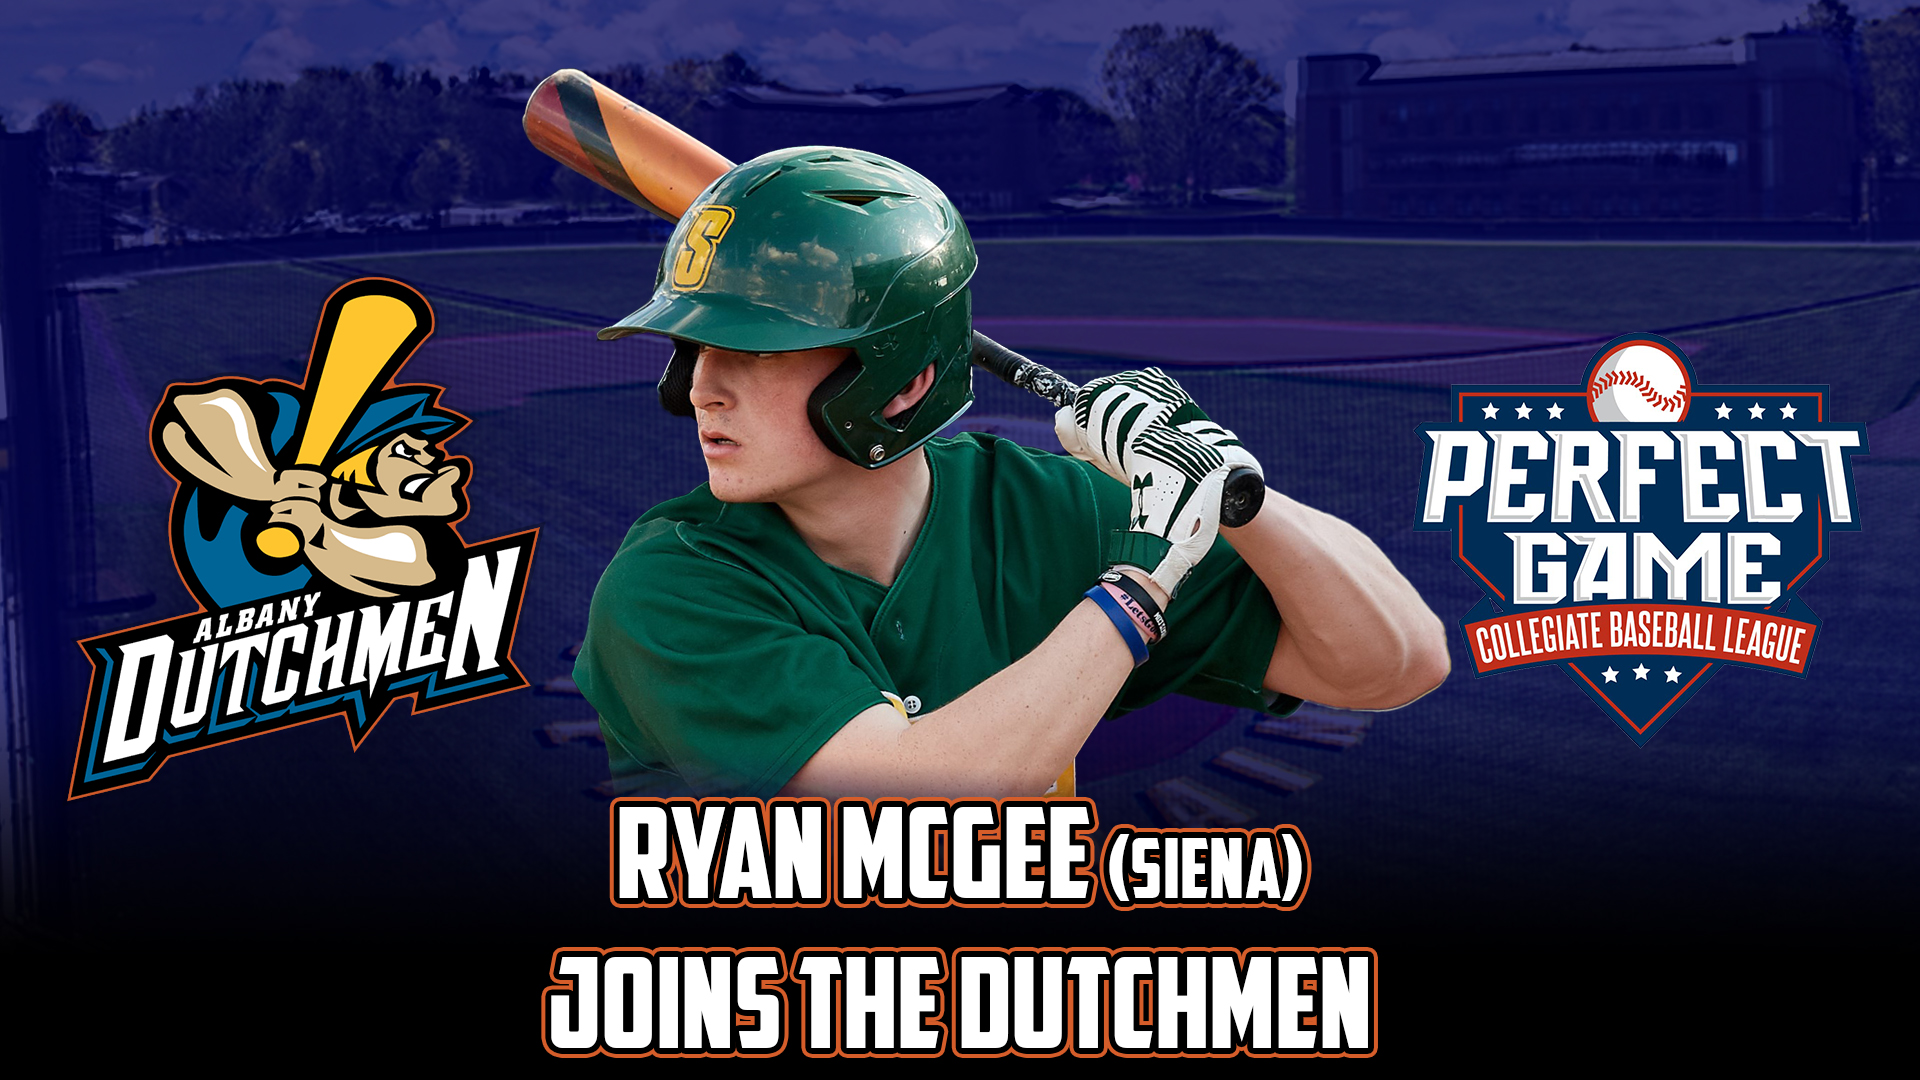 The Official Site for The Albany Dutchmen: News